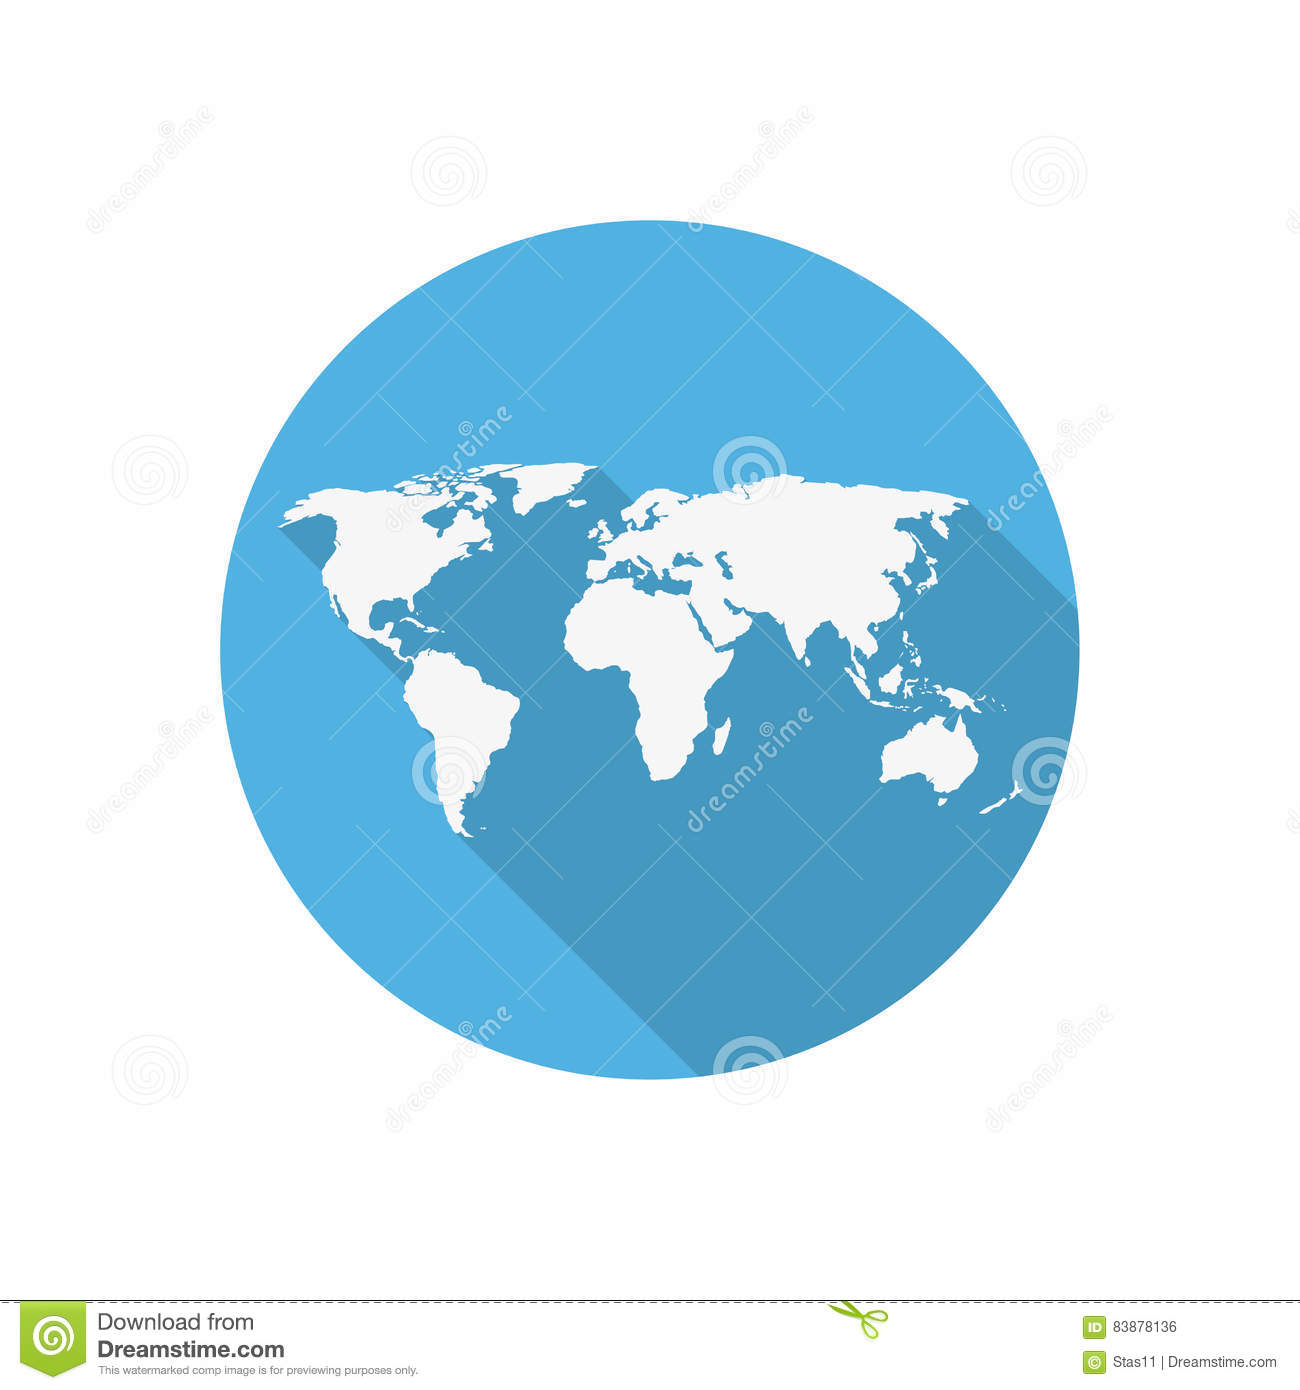 Icon world map on a blue circle in a flat design stock vector icon world map on a blue circle in a flat design gumiabroncs Gallery